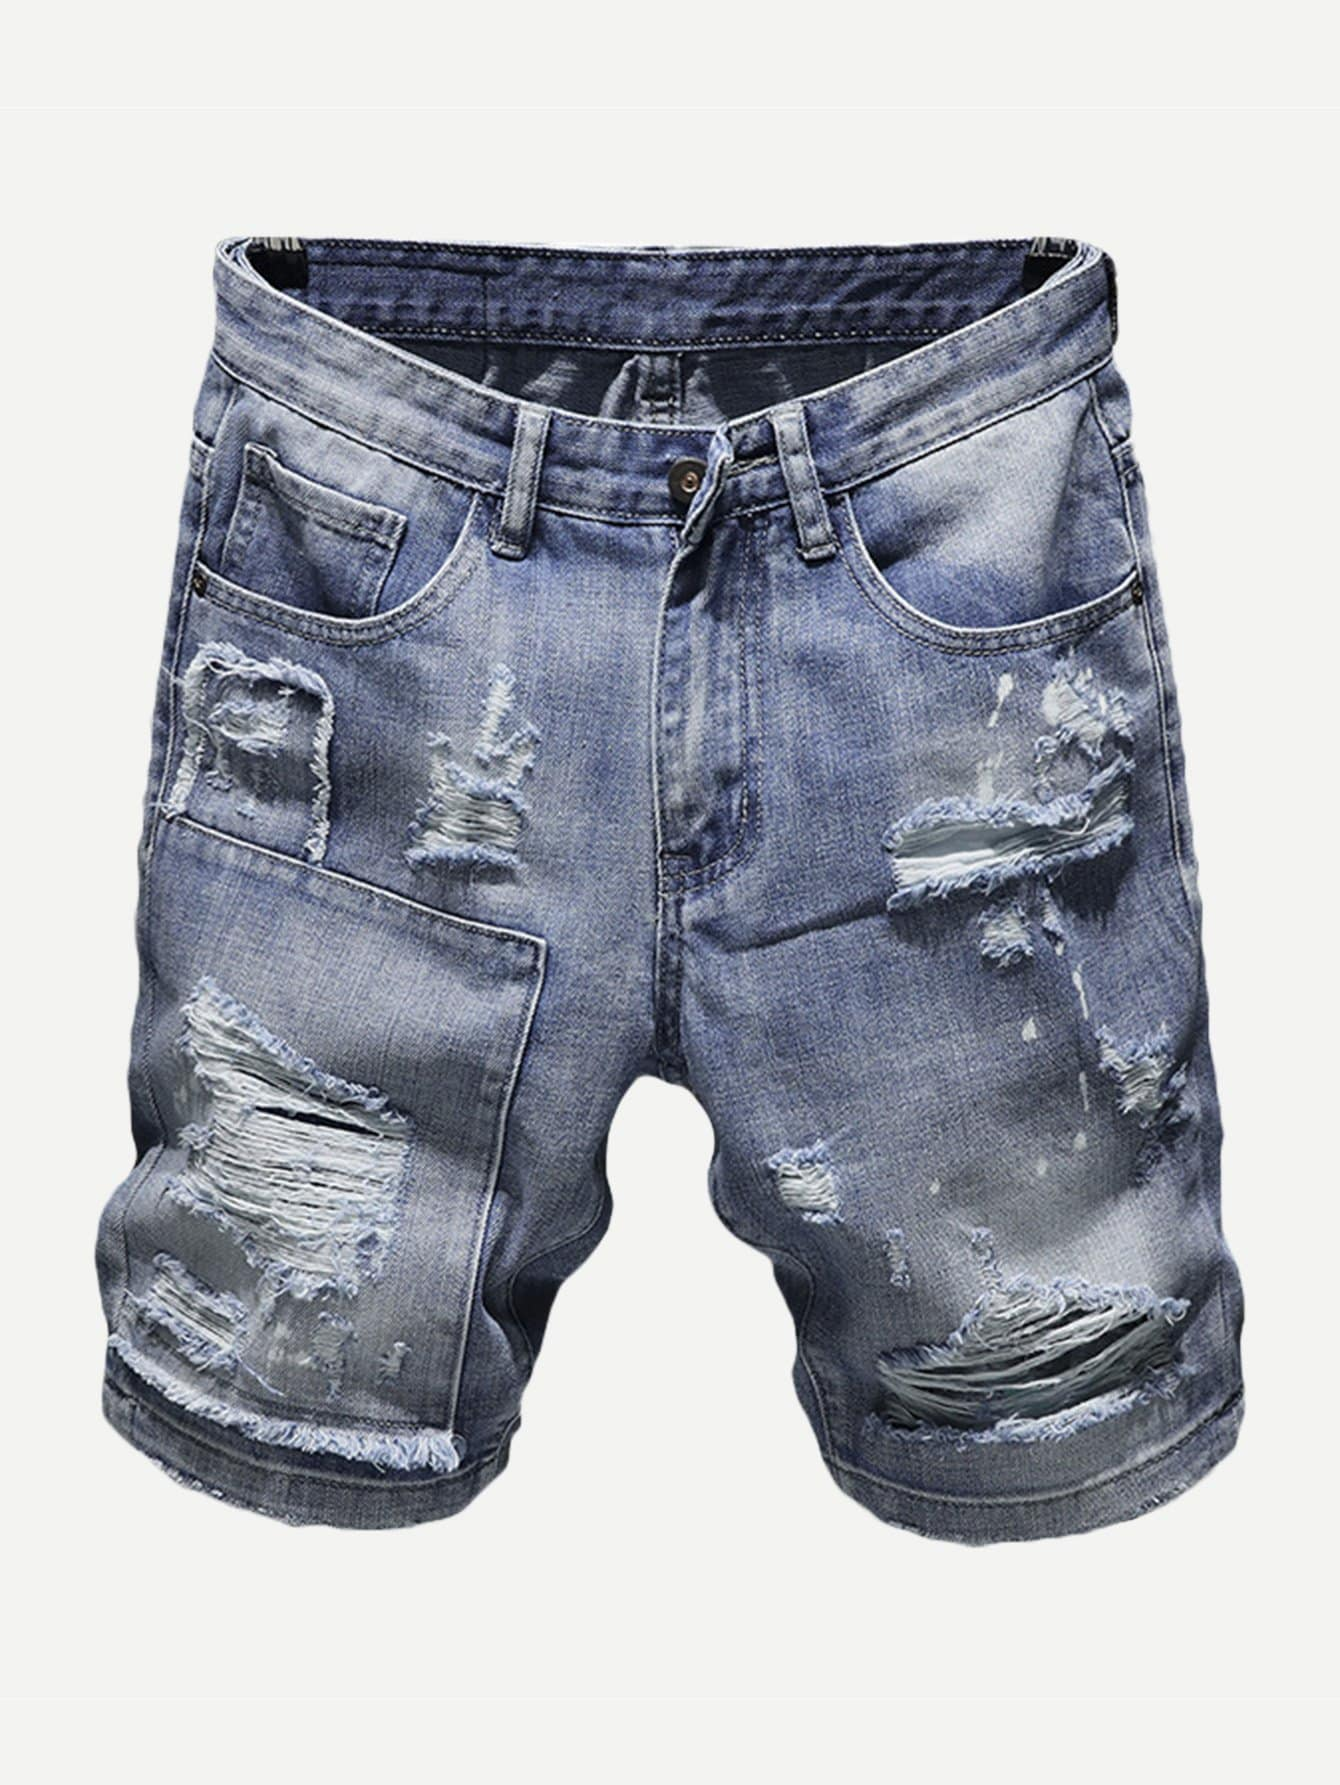 Men Destroyed Denim Shorts Men Destroyed Denim Shorts